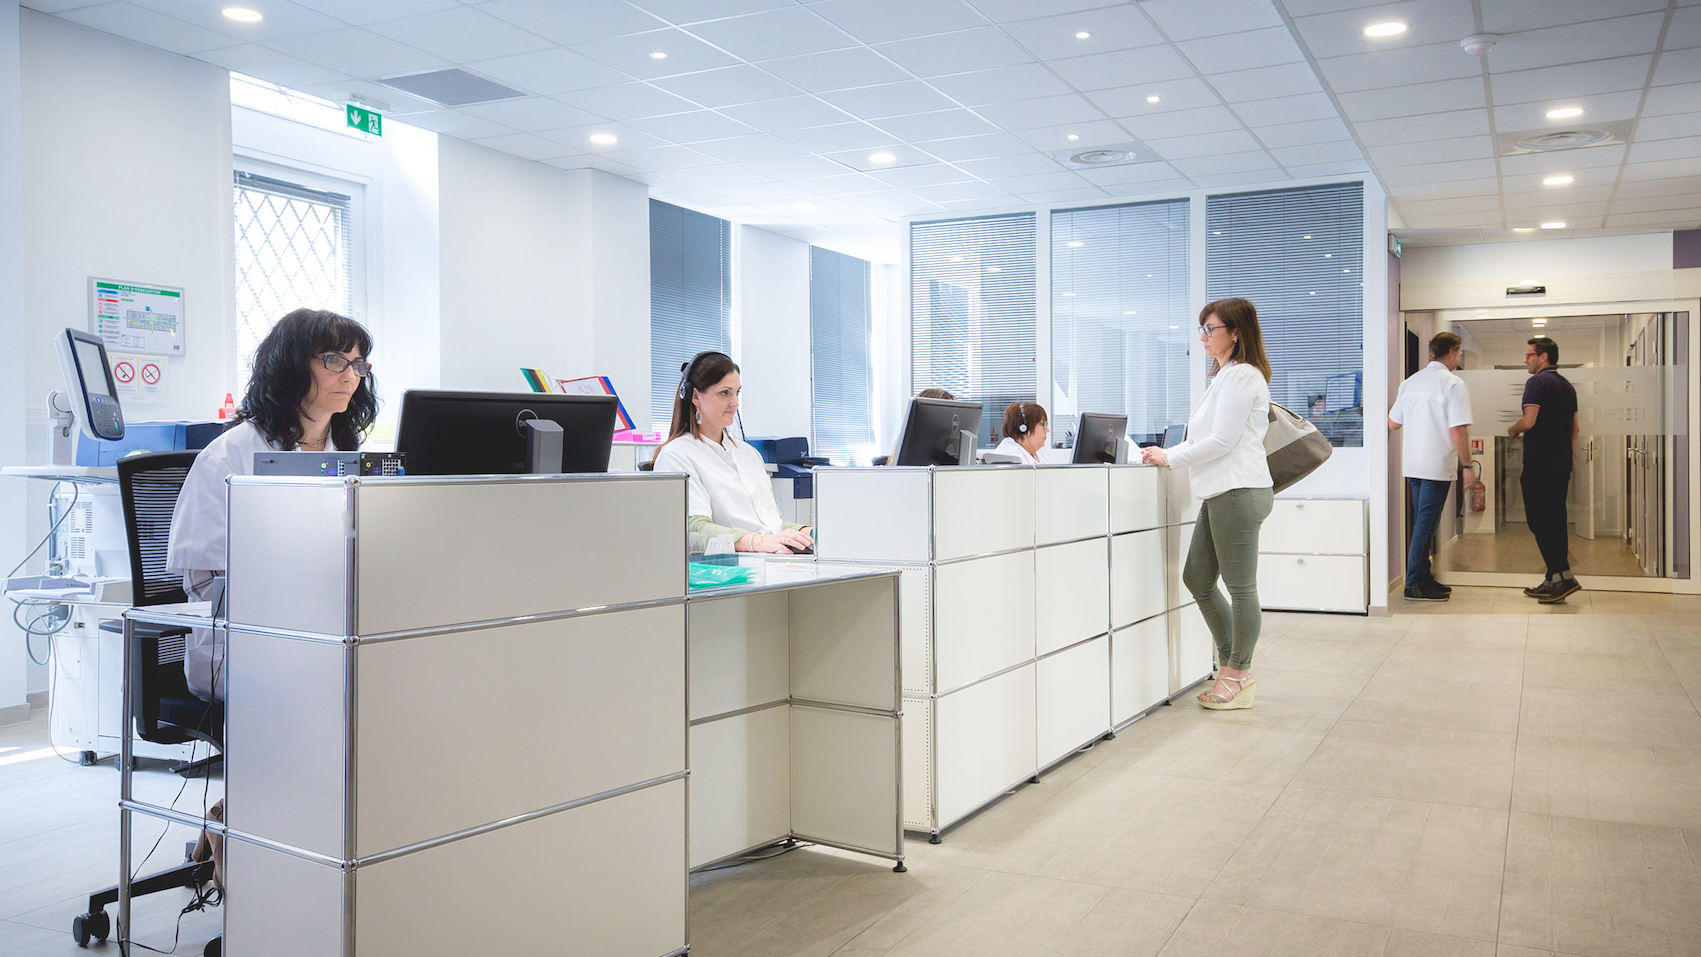 centre imagerie medicale nimes